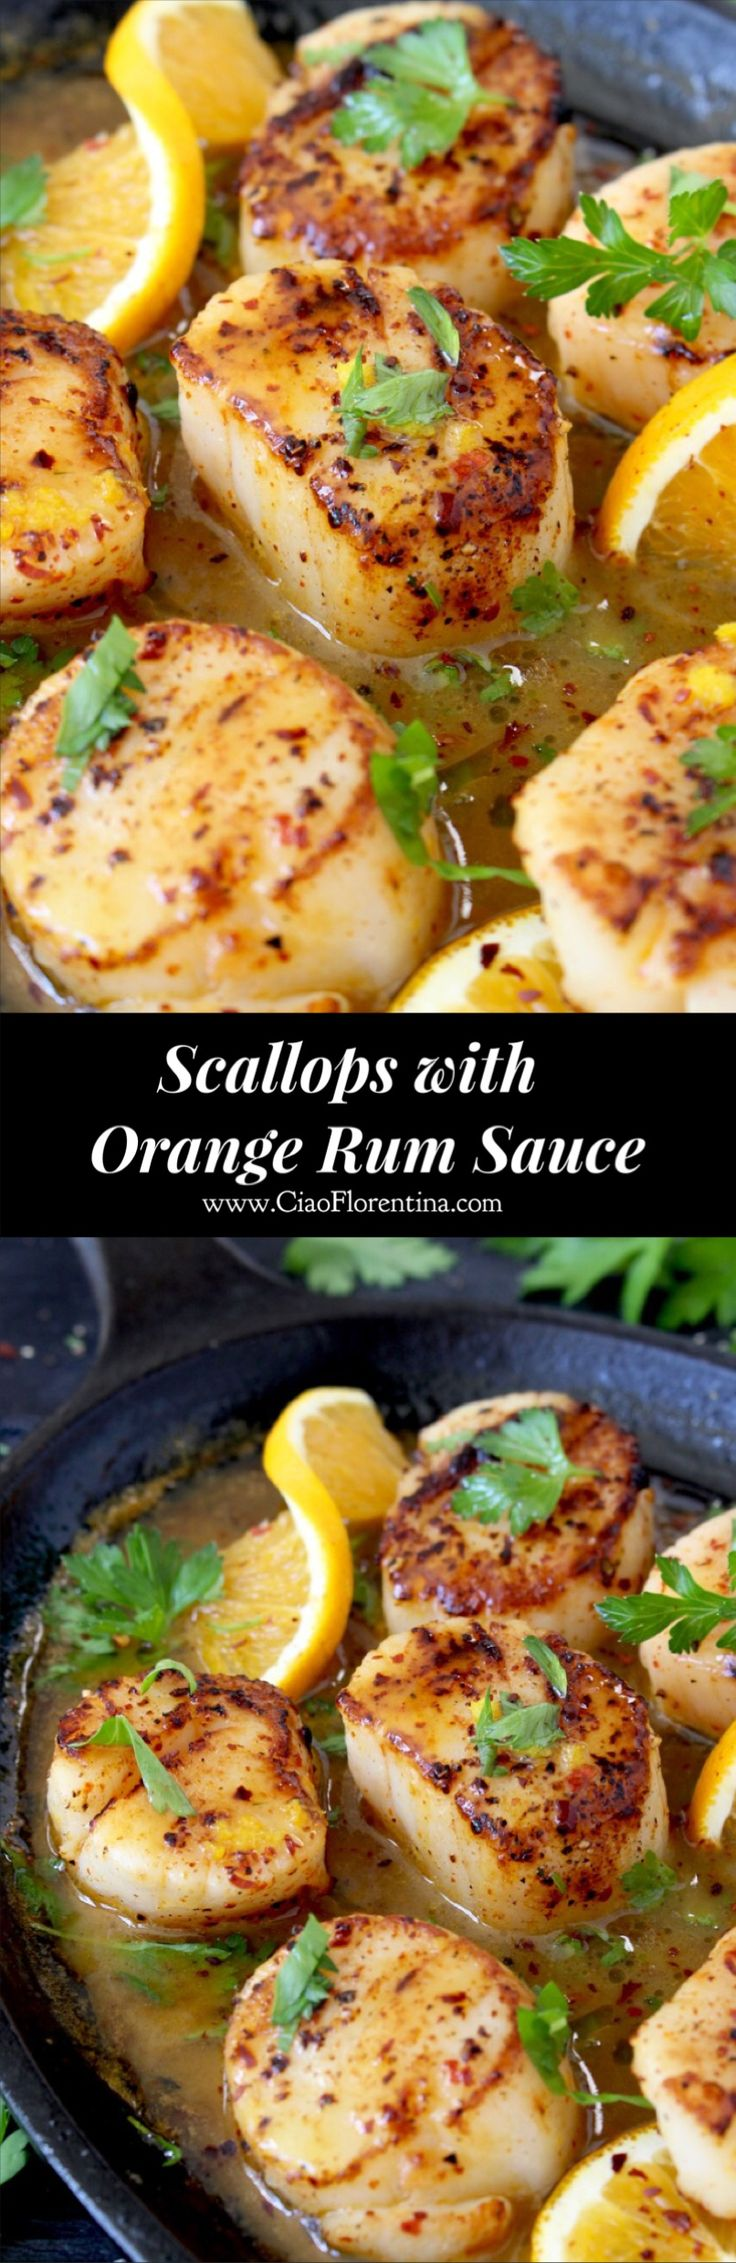 Seared Scallops Recipe with Orange Rum Sauce | CiaoFlorentina.com…